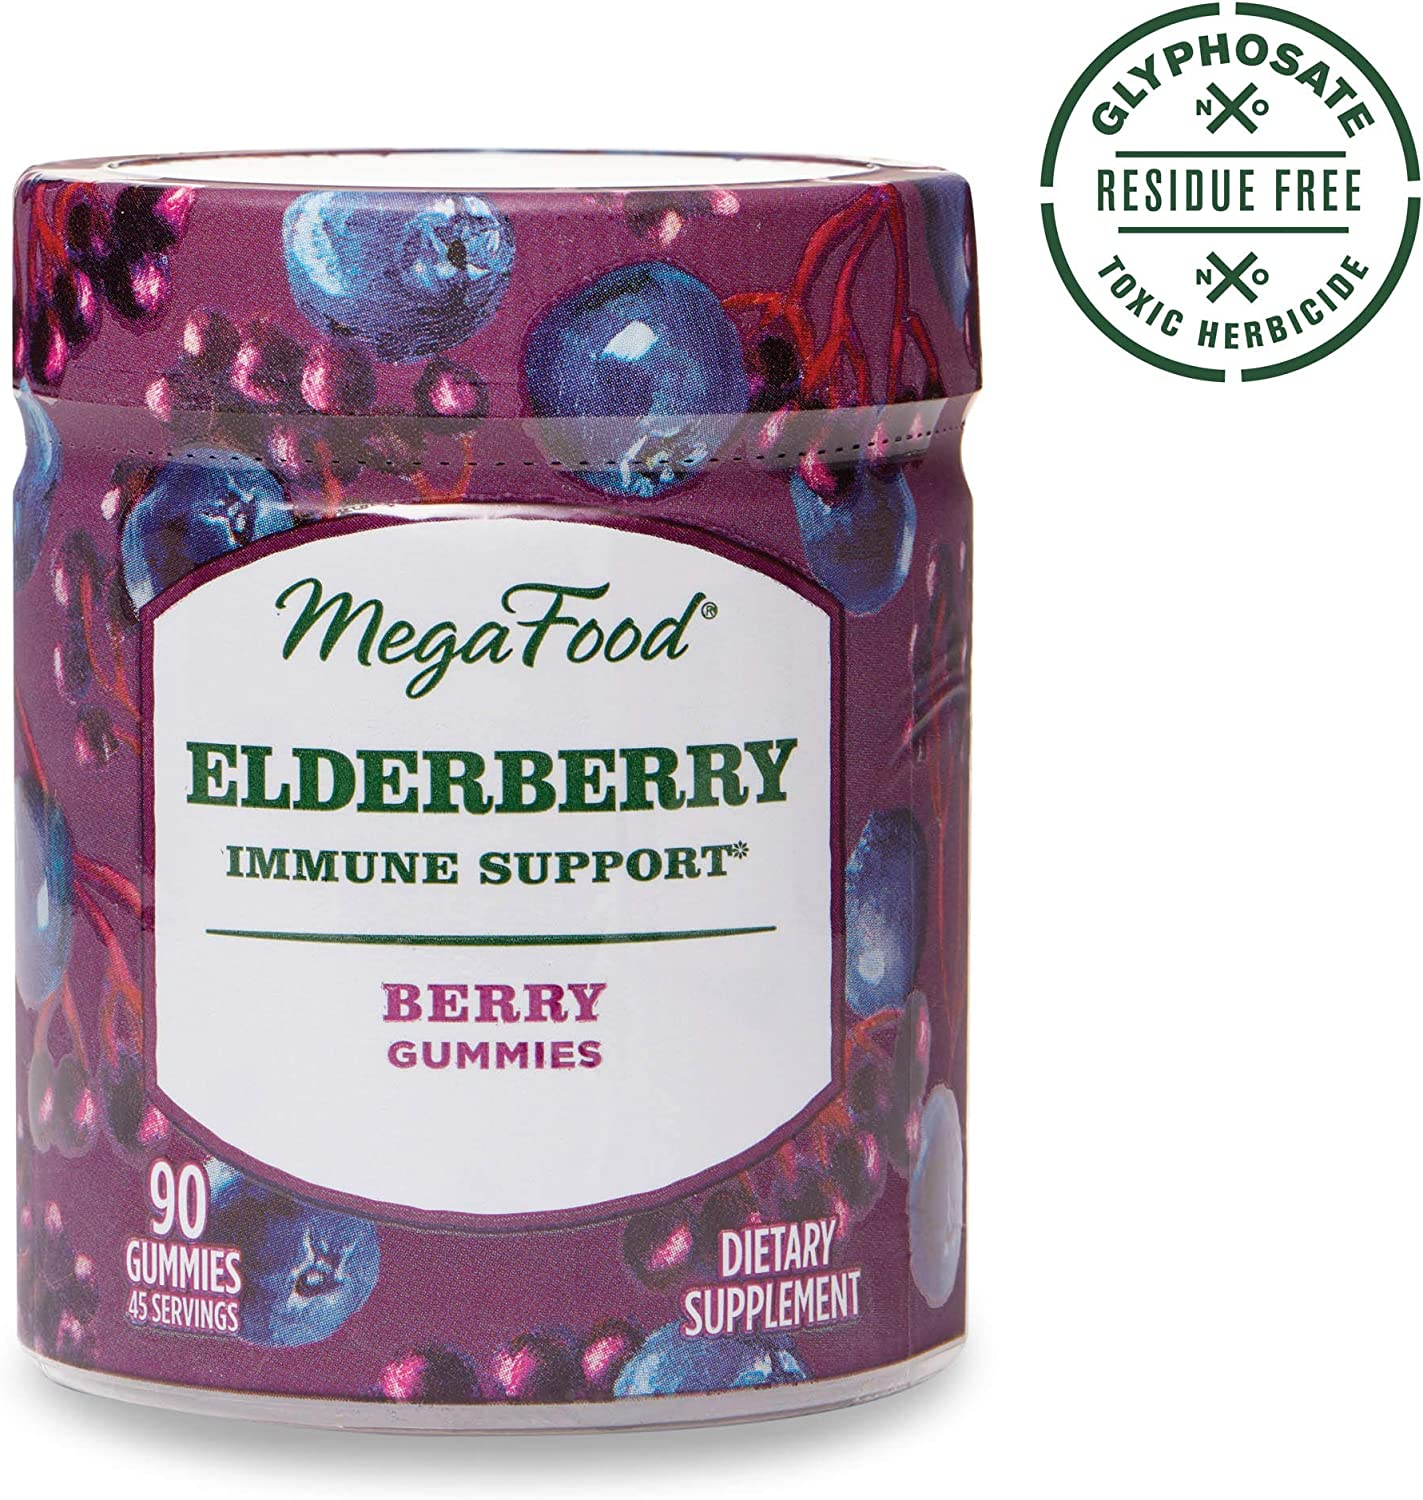 MegaFood, Elderberry Immune Support Gummies, Berry Soft Chew Supplement, Gluten Free, Vegan, 90 Gummies 45 Servings